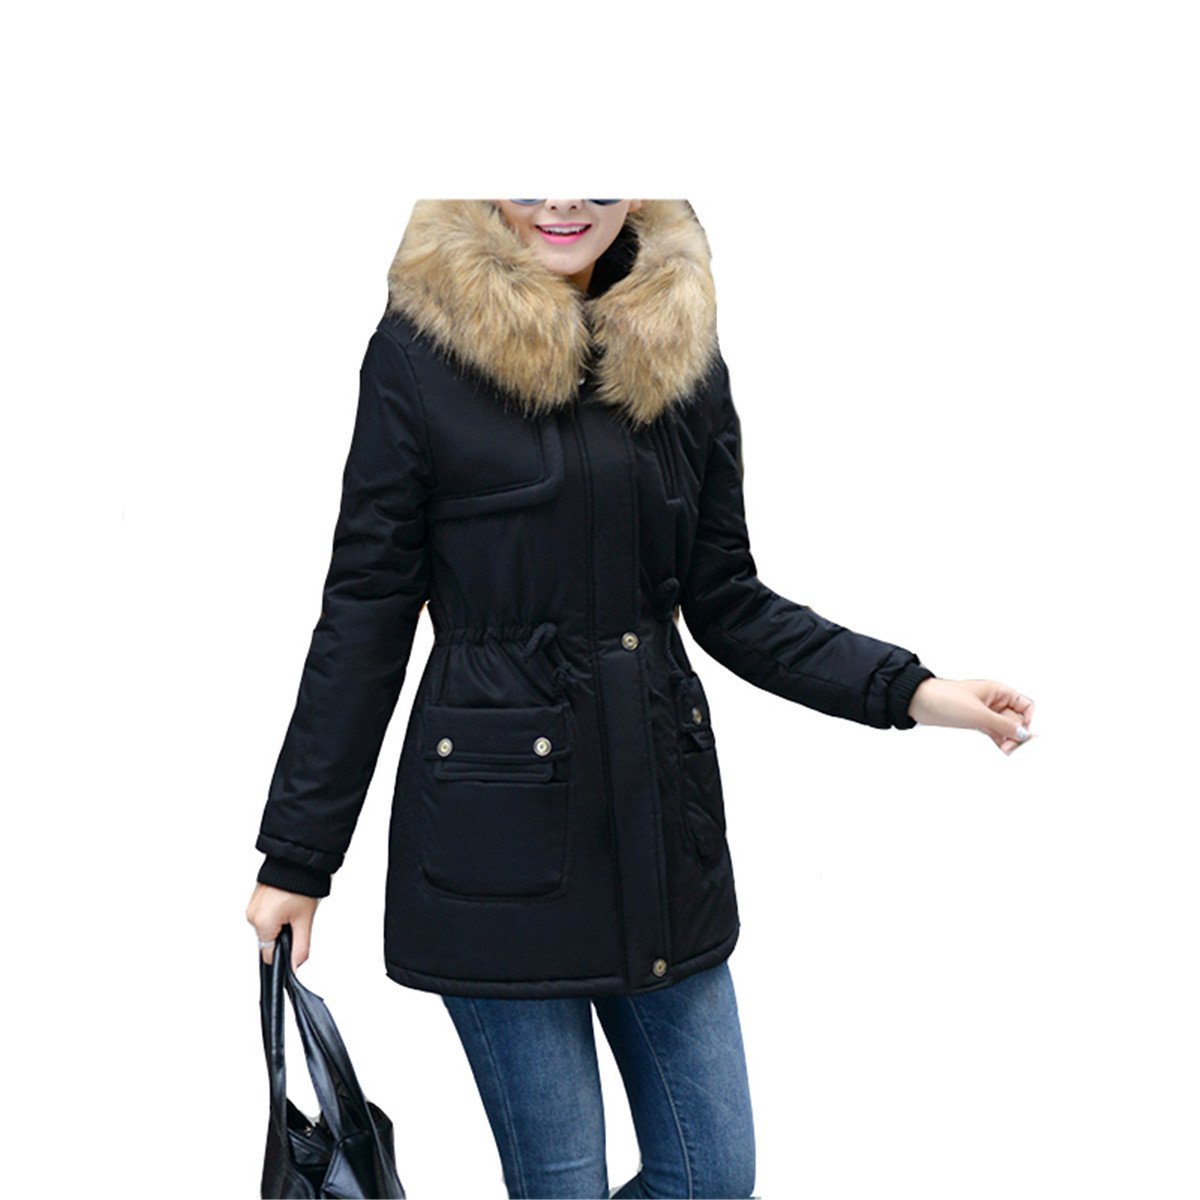 Amazon.com: LR New New Women Winter Coat Wadded Jacket Medium-Long Plus Size 4XL Parka Fur Collar Thickening Hood Abrigos Female Snow Wear Black 4XL: ...